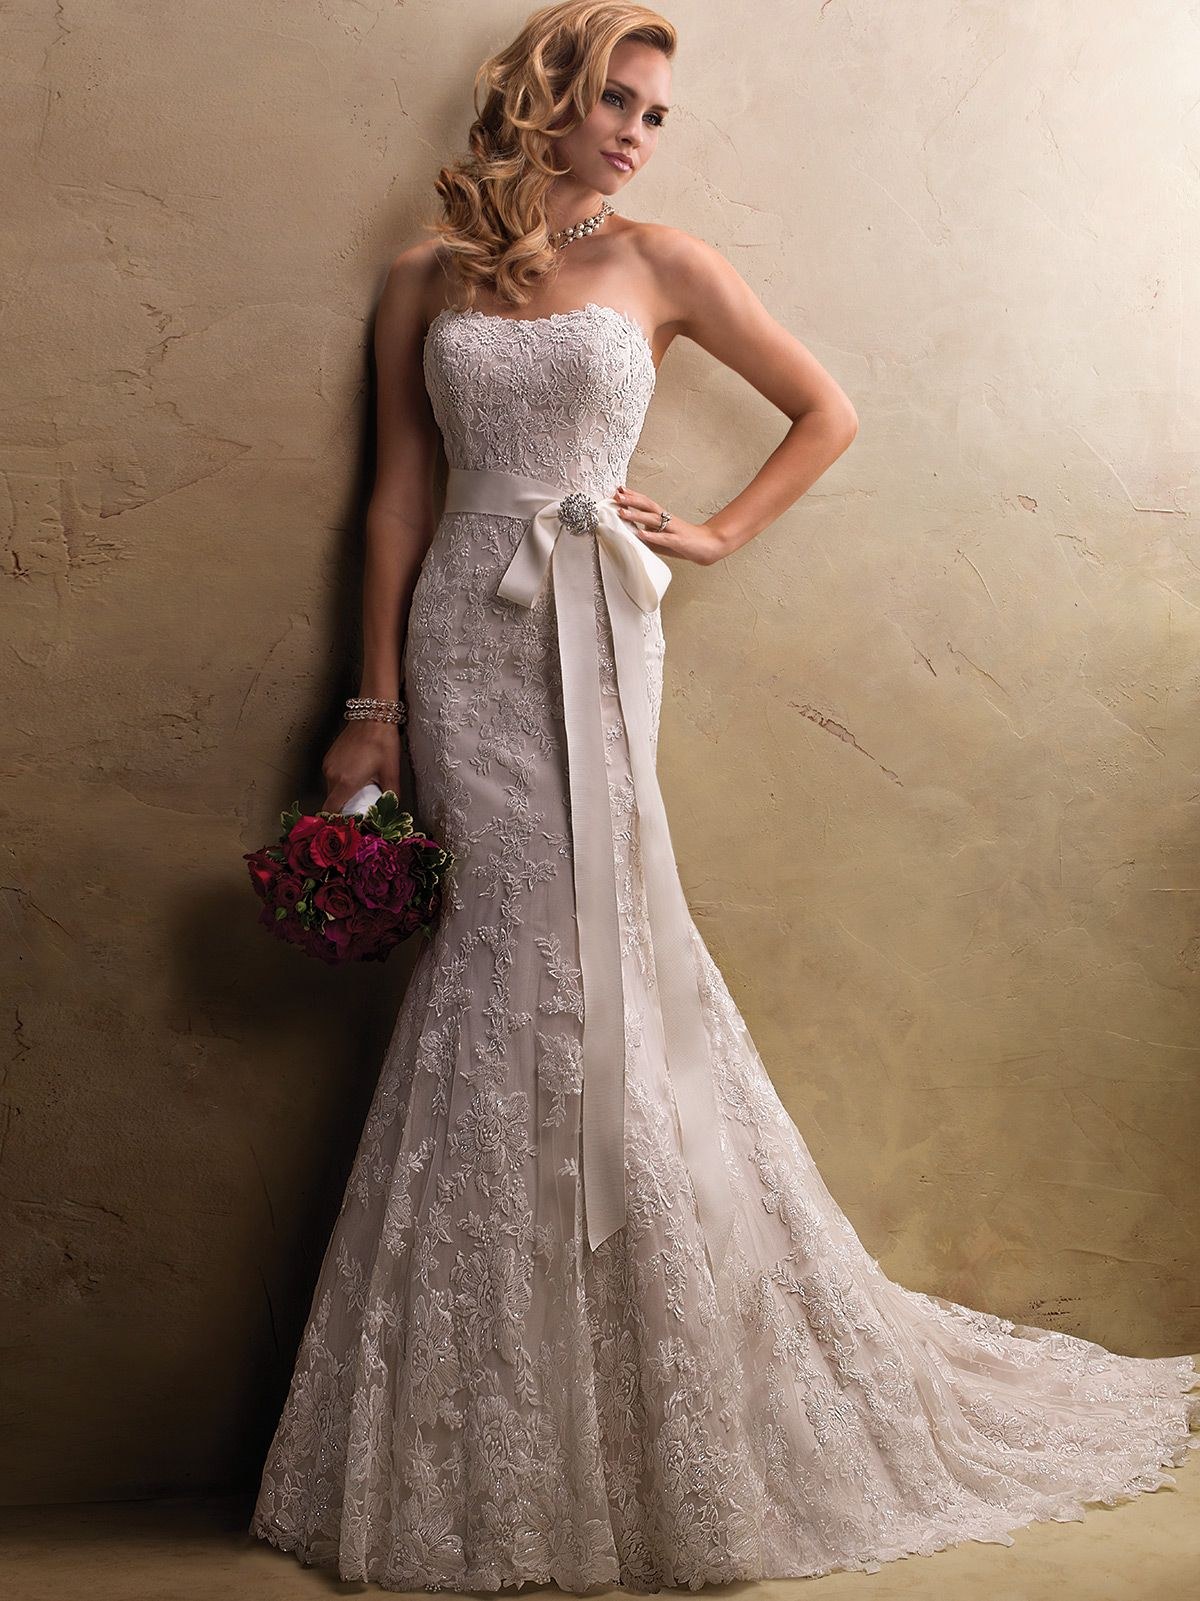 Strapless Lace Motifs Wedding Gown Maggie Sottero Judith